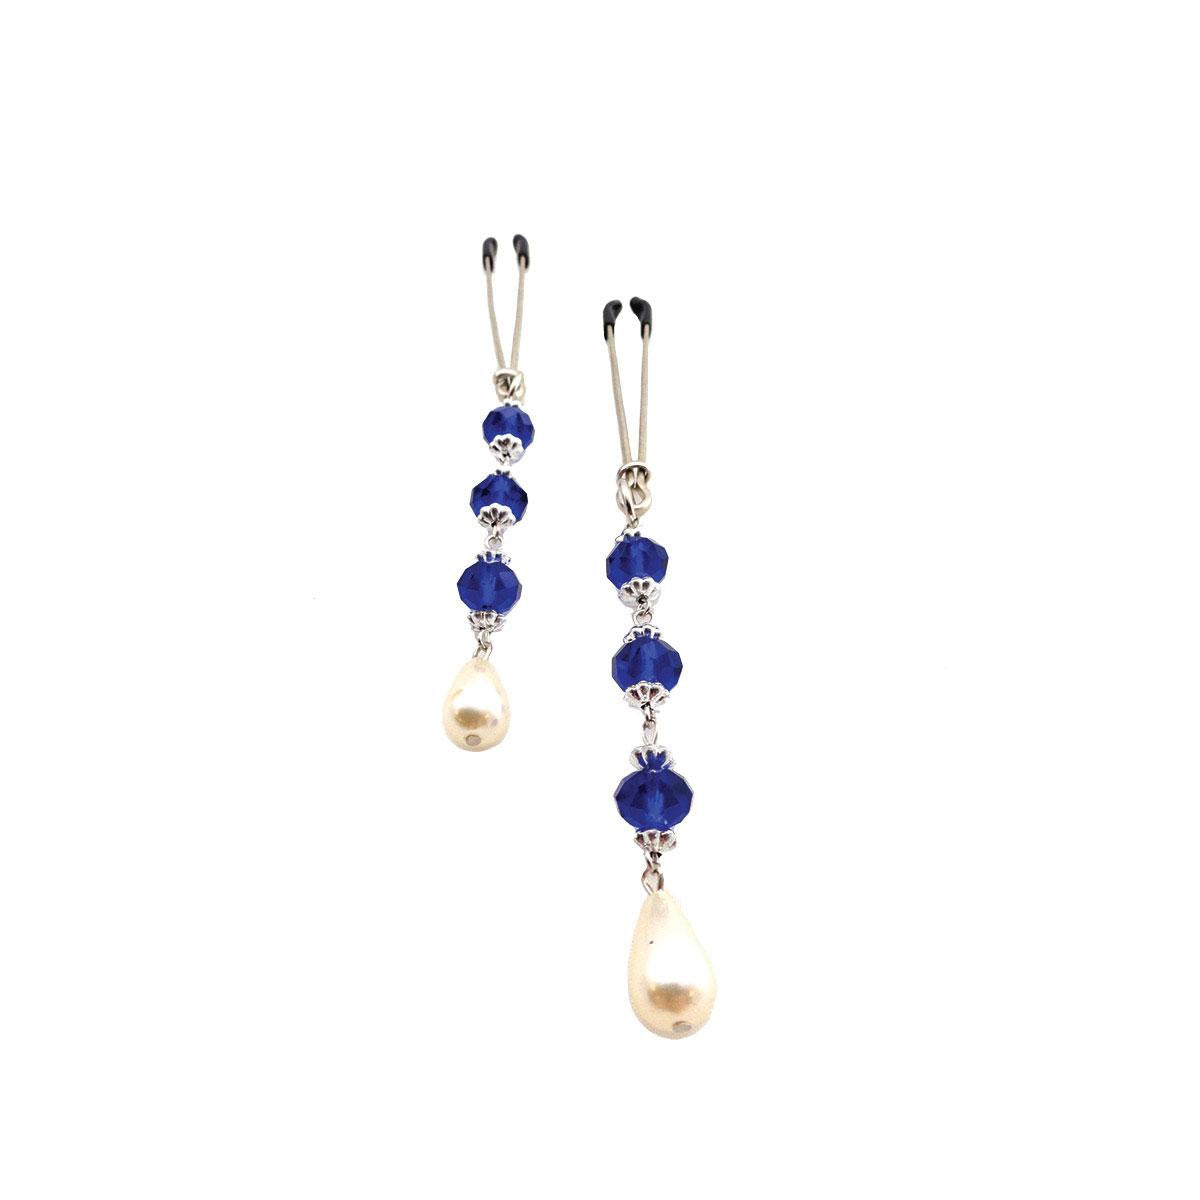 Bijoux de Nip Pearl Dark Blue Beads